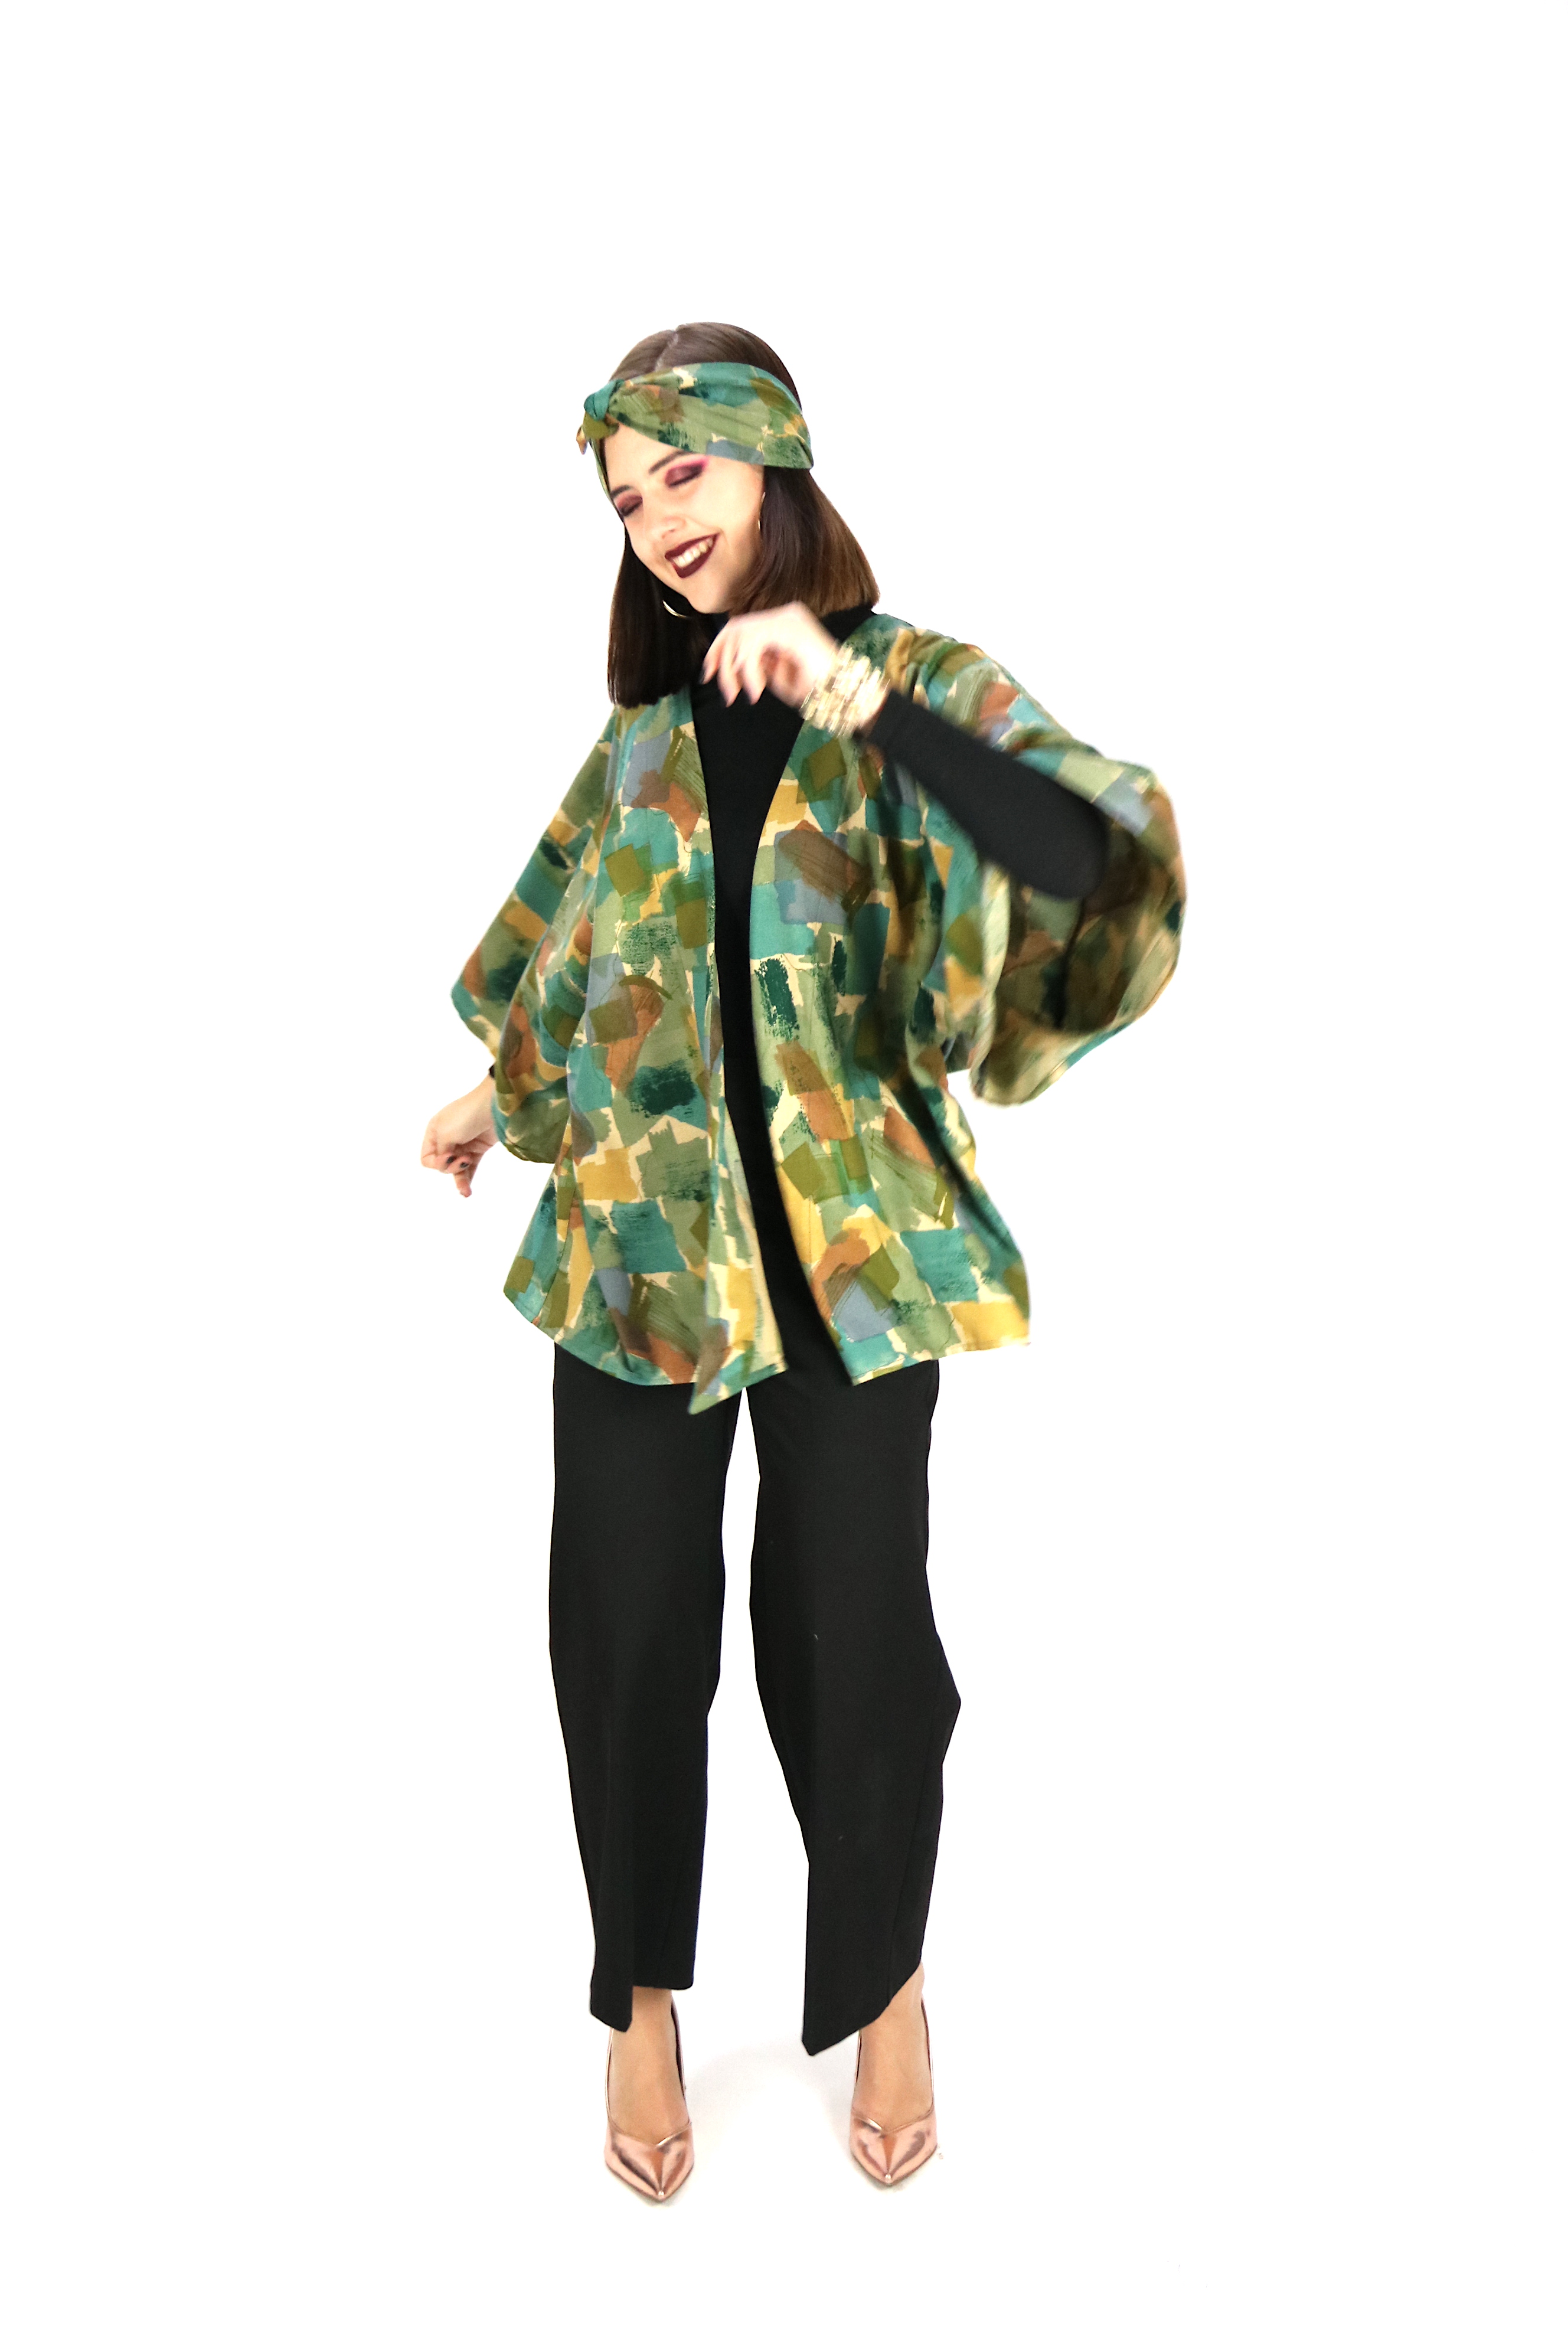 woman wearing a jacket and matching headband in mottled green tonde, with black trousers